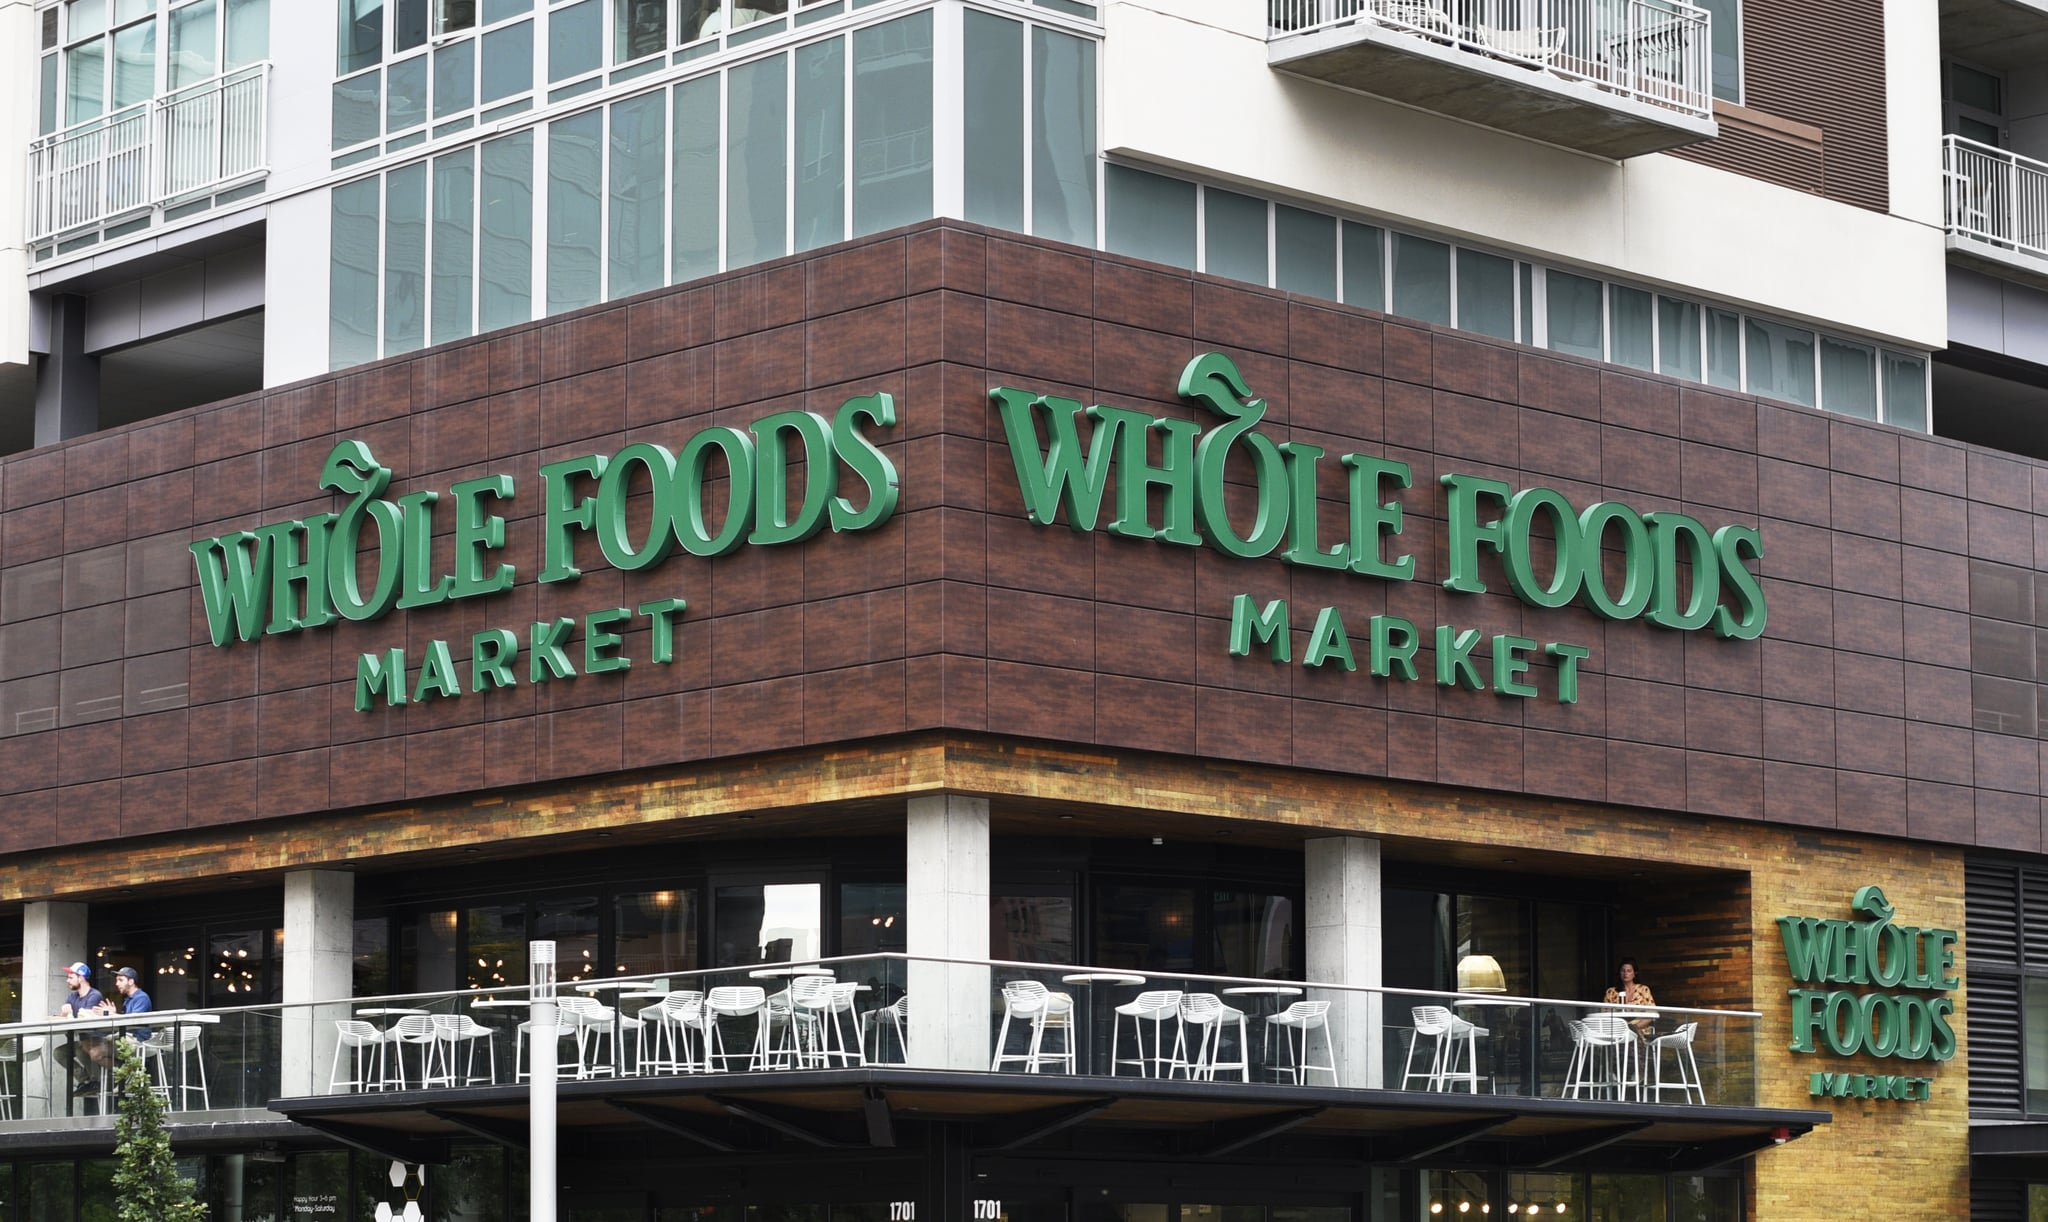 DENVER, COLORADO - SEPTEMBER 4, 2019: A Whole Foods Market in downtown Denver, Colorado. (Photo by Robert Alexander/Getty Images)